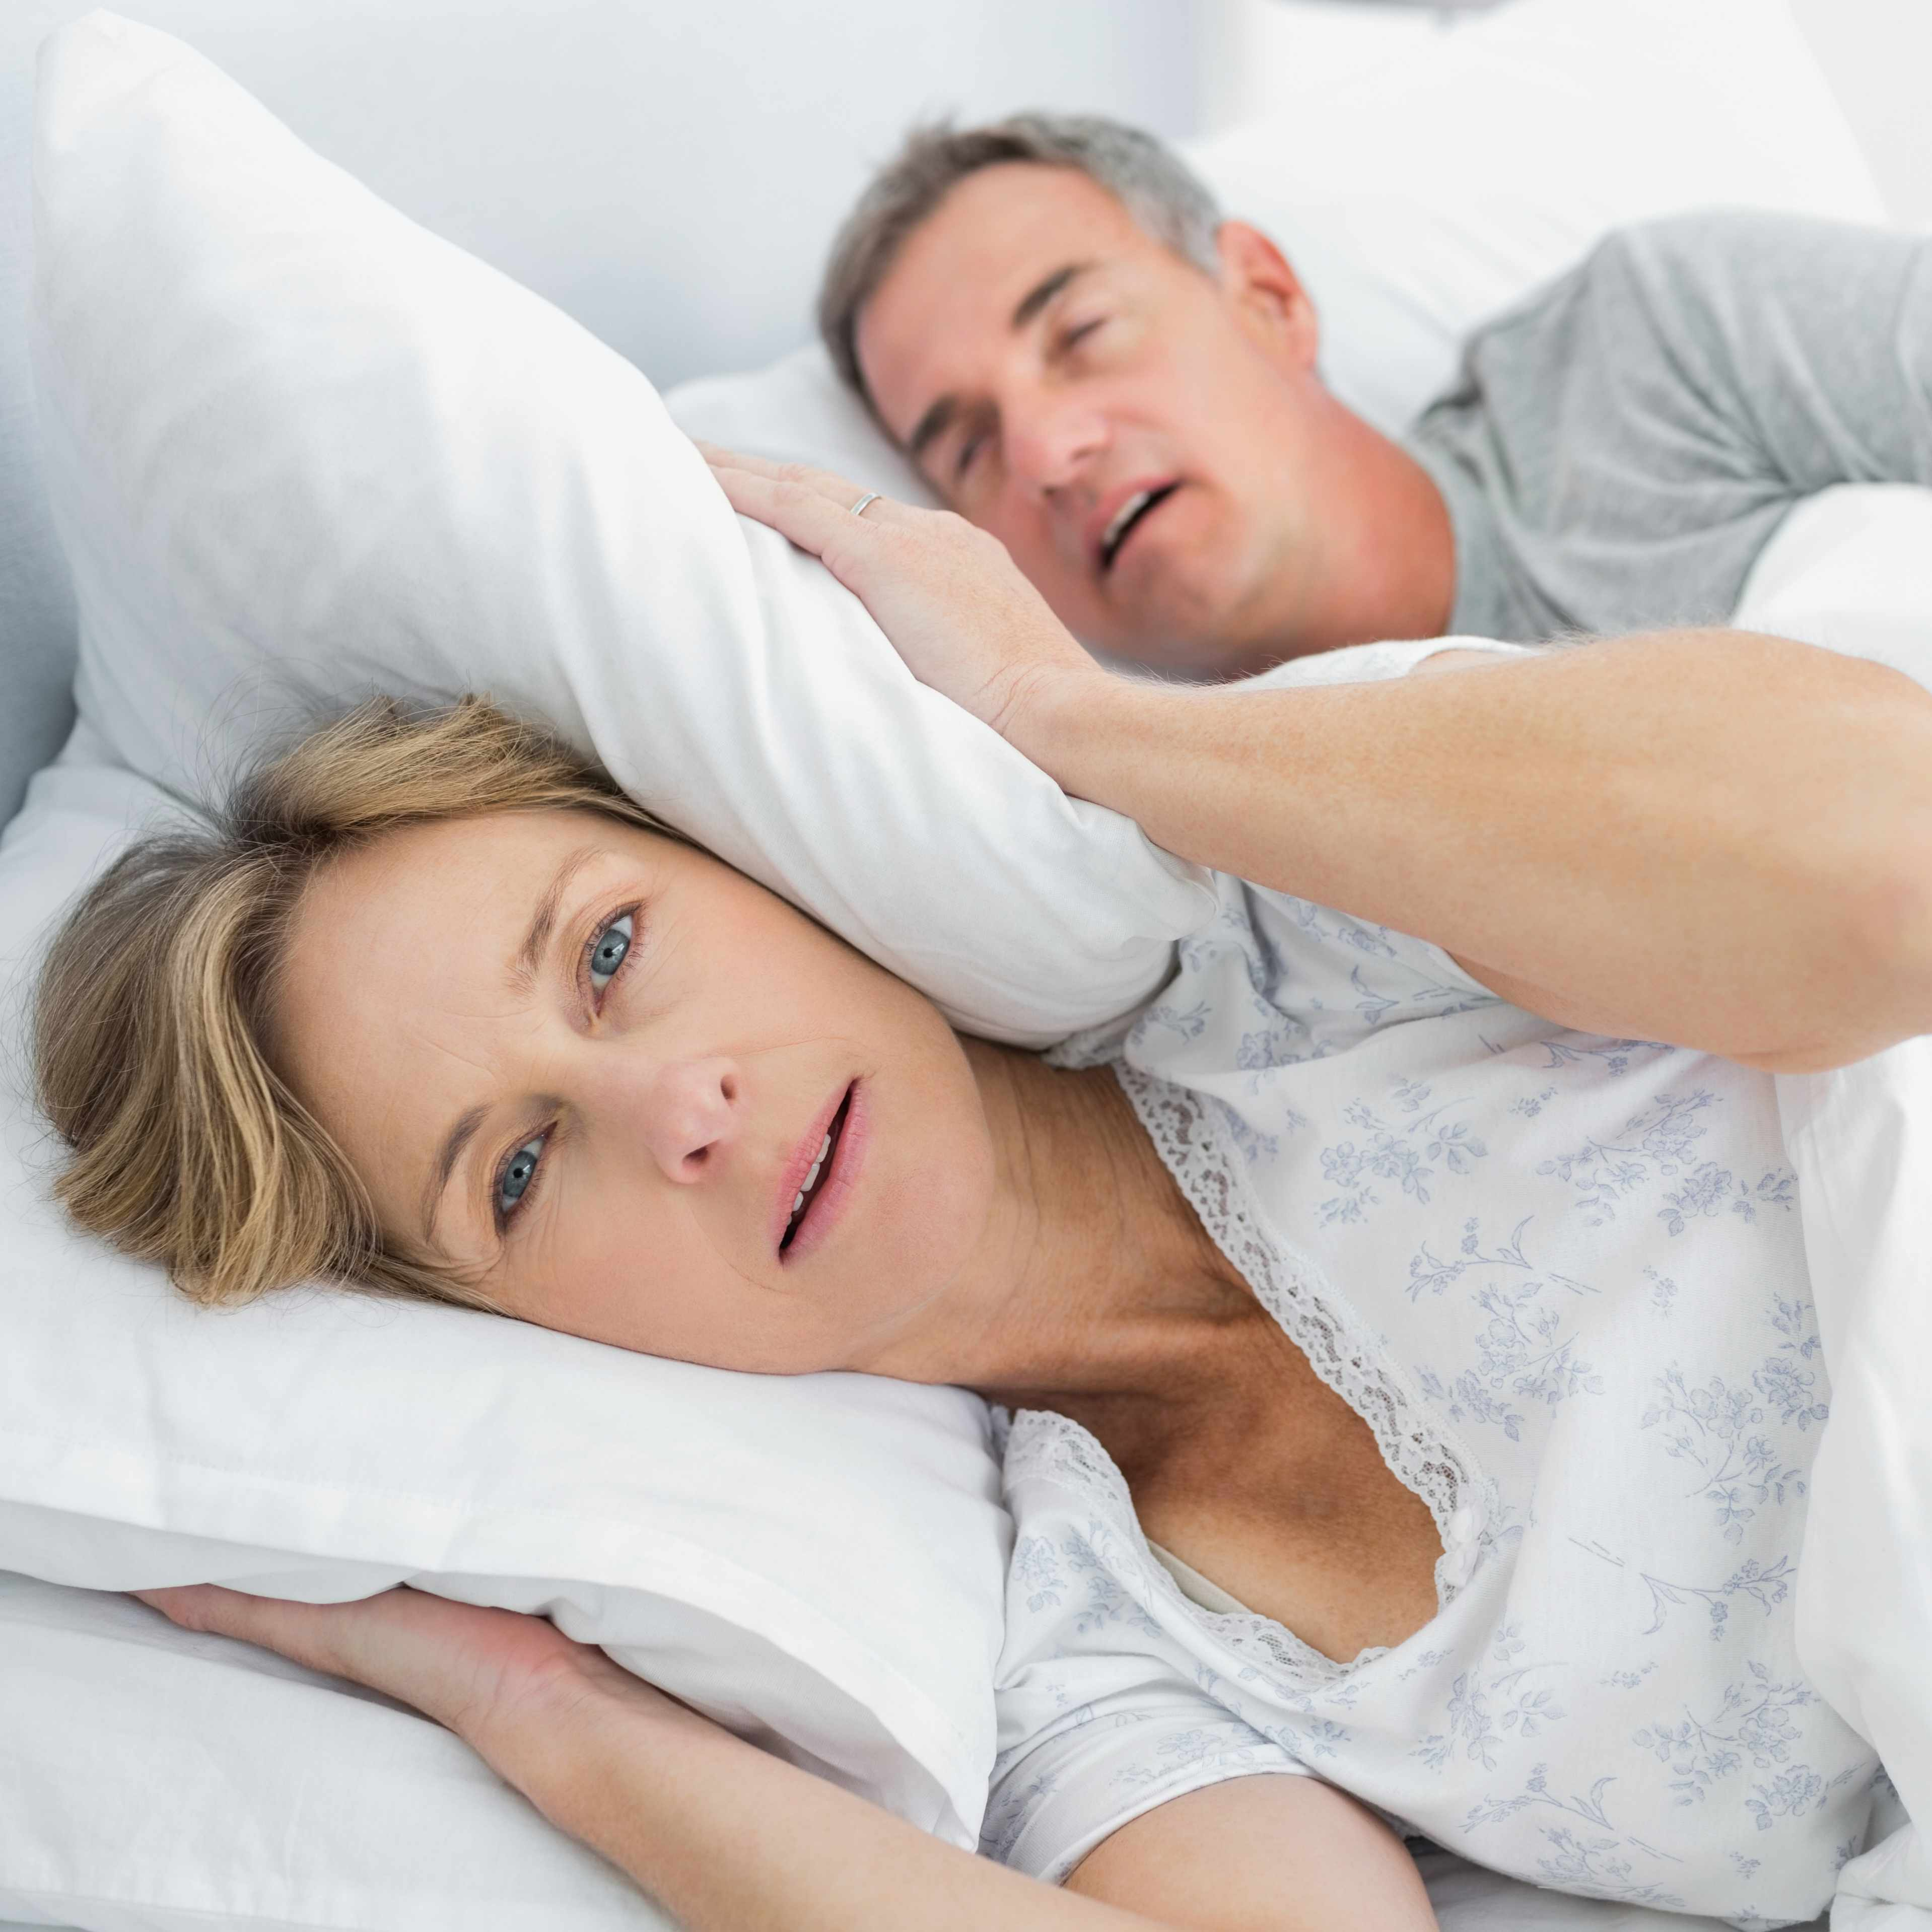 a middle-aged couple in bed with man snoring and woman covering her ears with a pillow